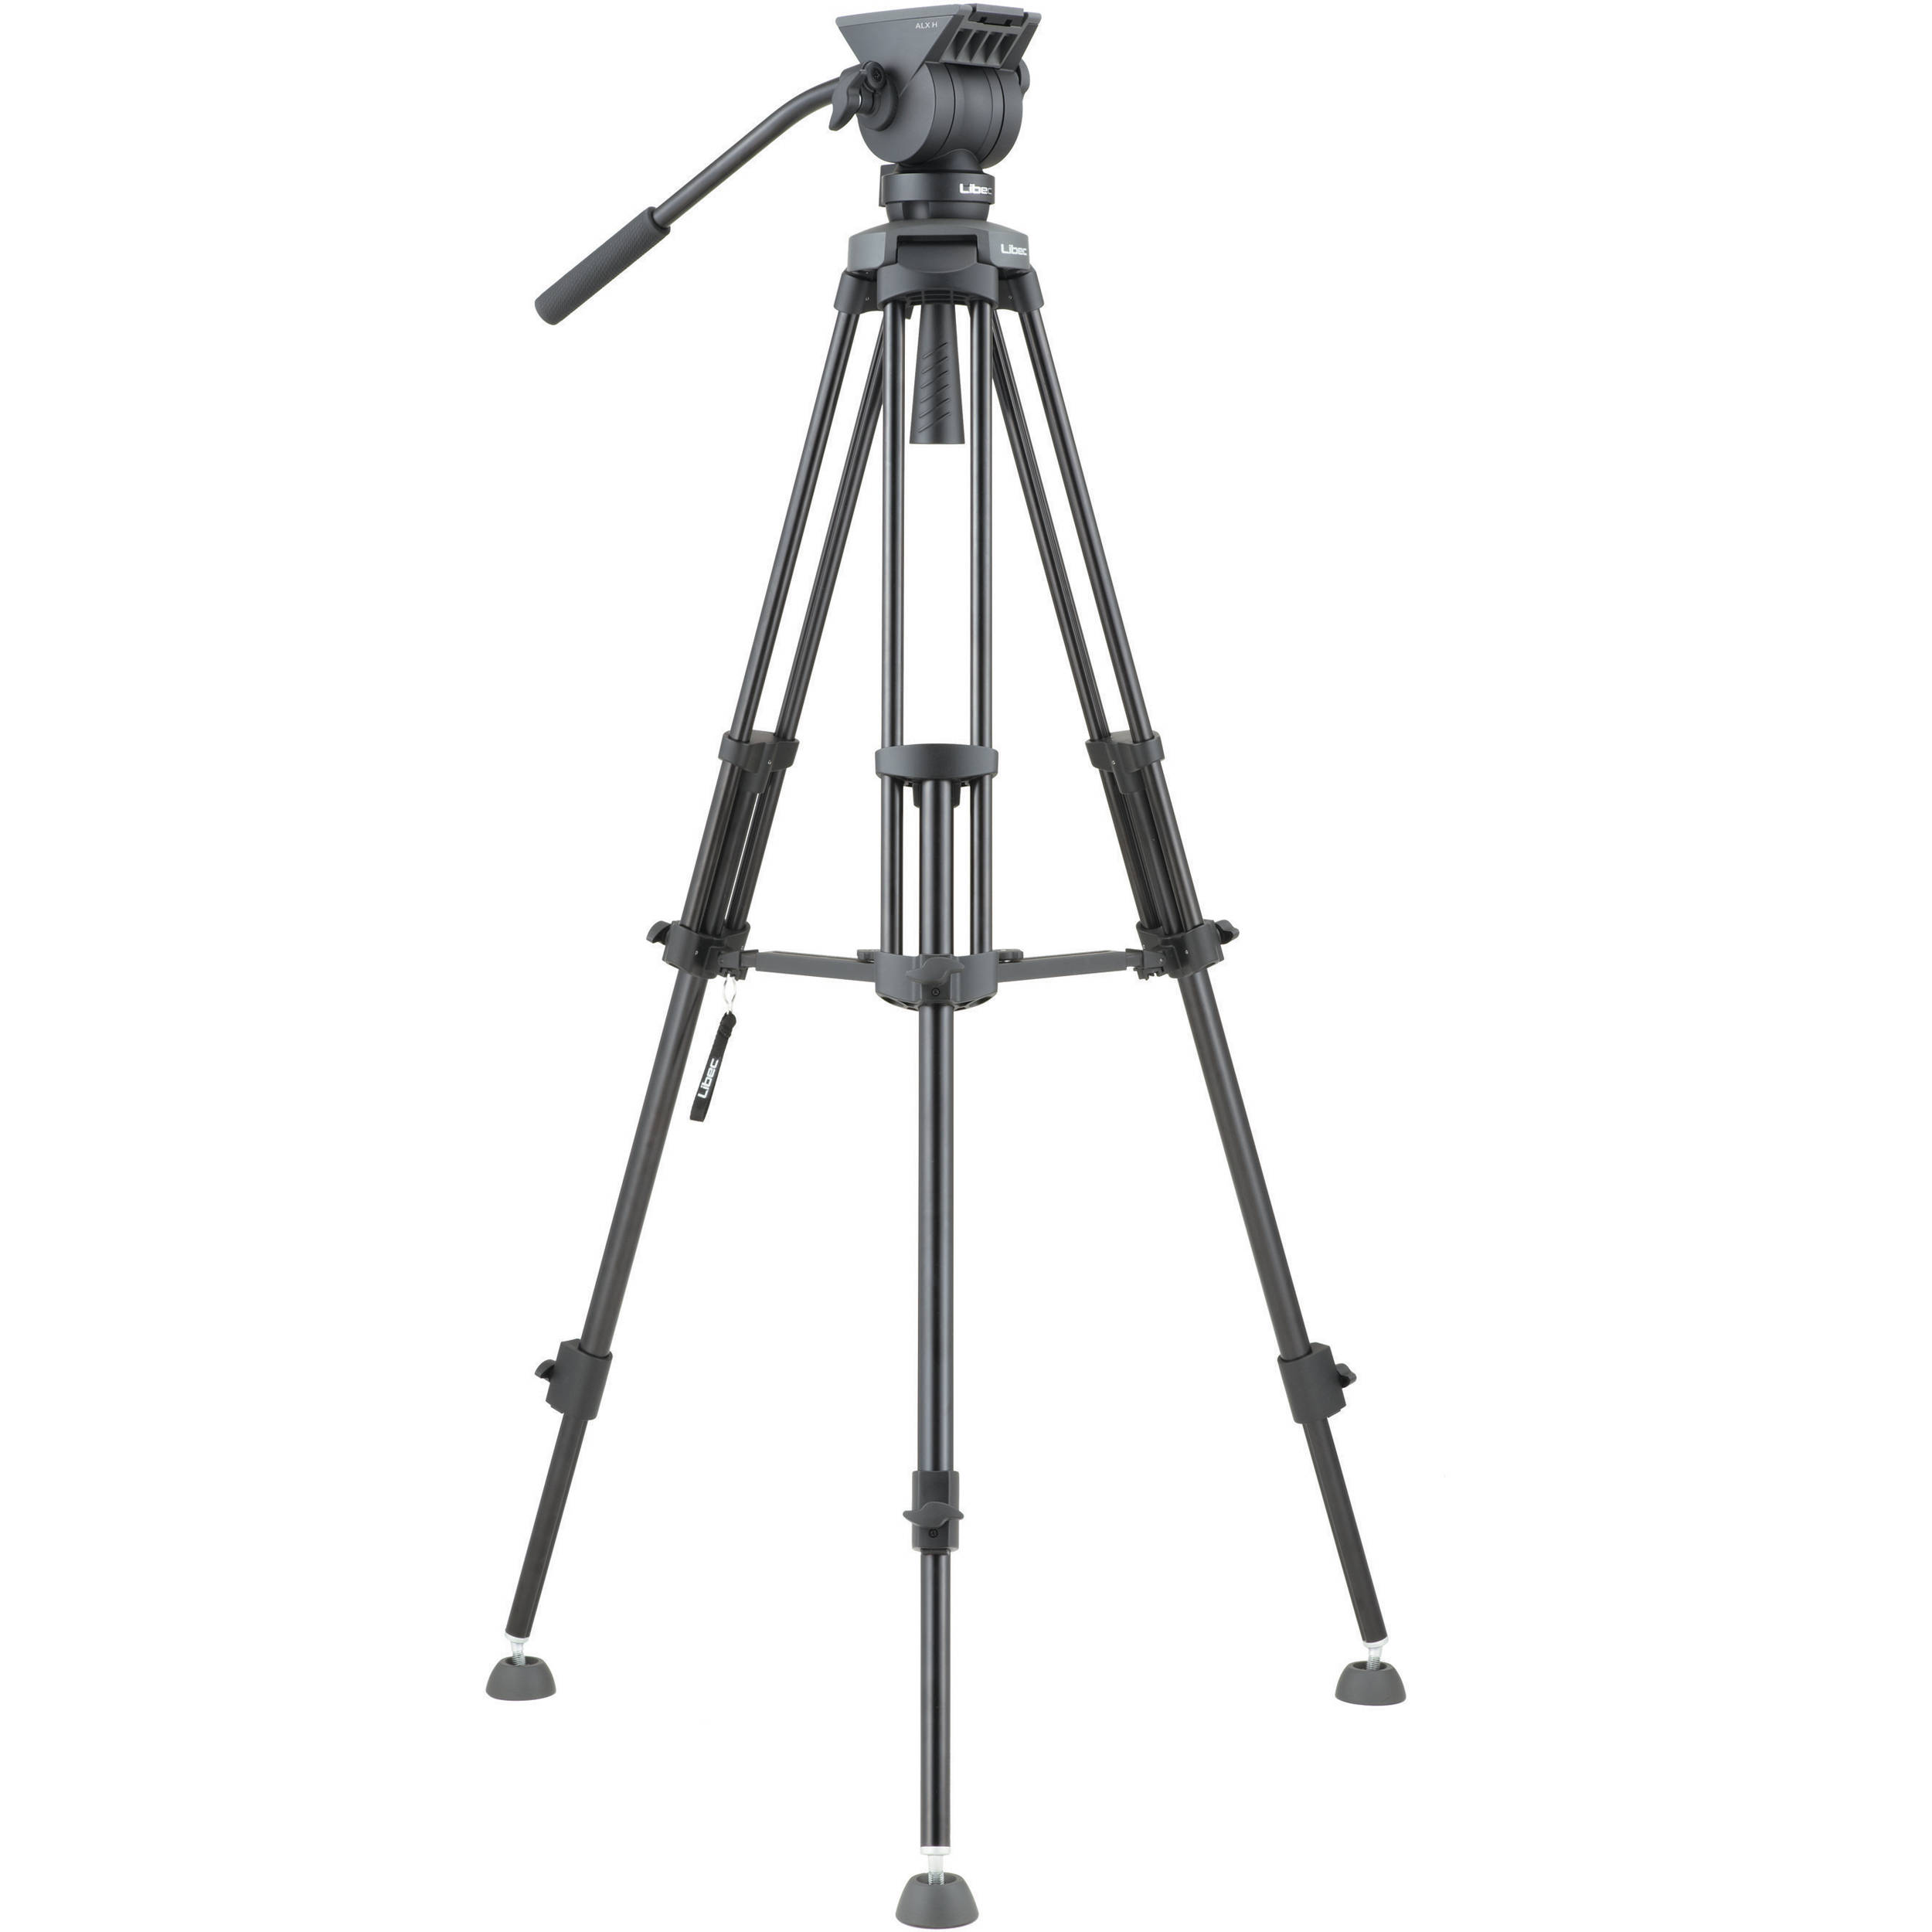 Libec ALX KIT Tripod and Fluid Head Kit ALX KIT B&H Photo Video